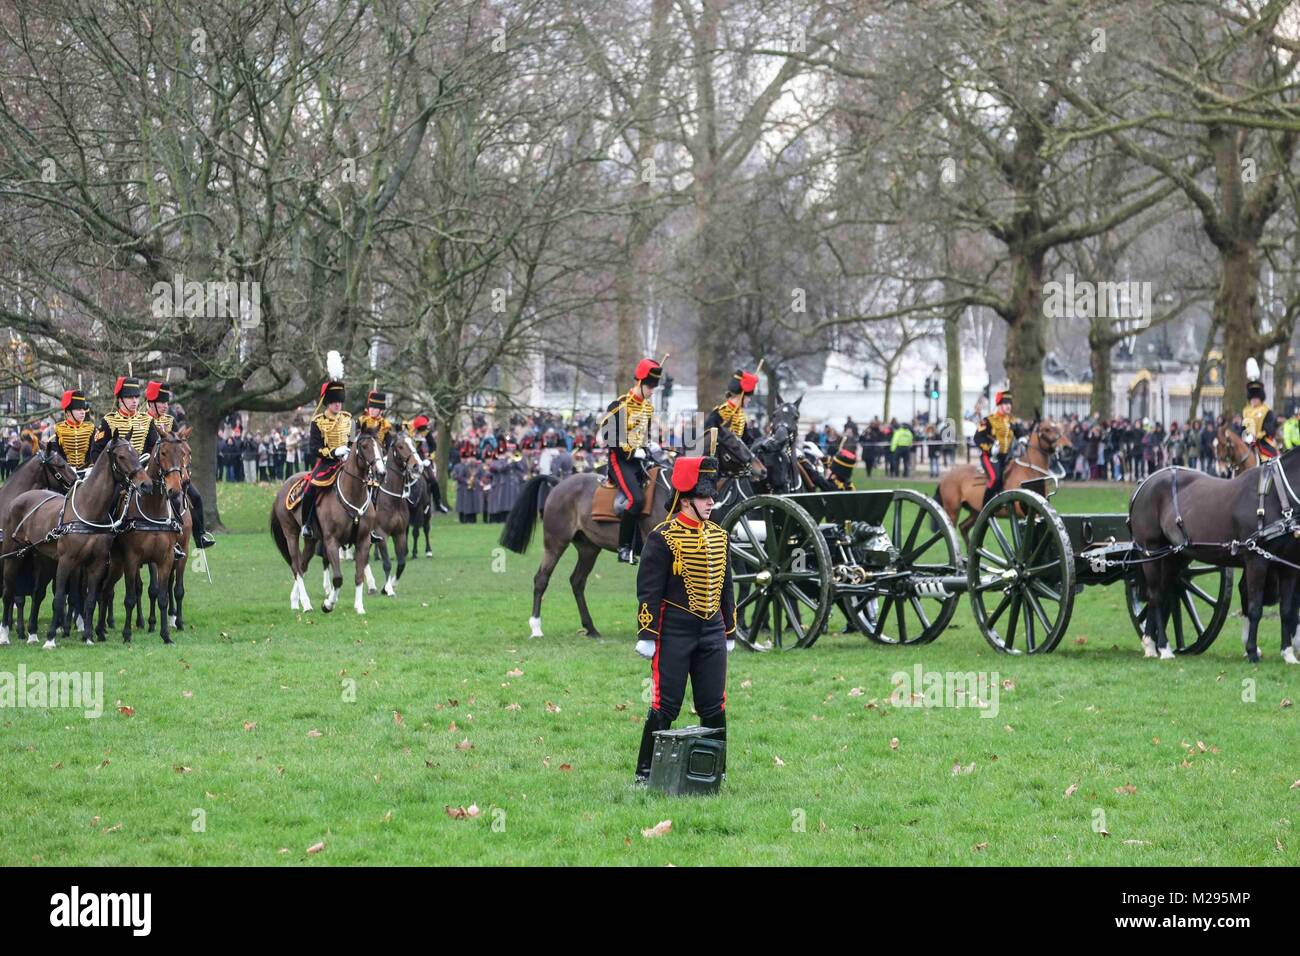 London, UK. 6th Feb, 2018. A 41-gun salute by the Kings Troop Royal Horse Artillery is fired in Green Park London, Stock Photo